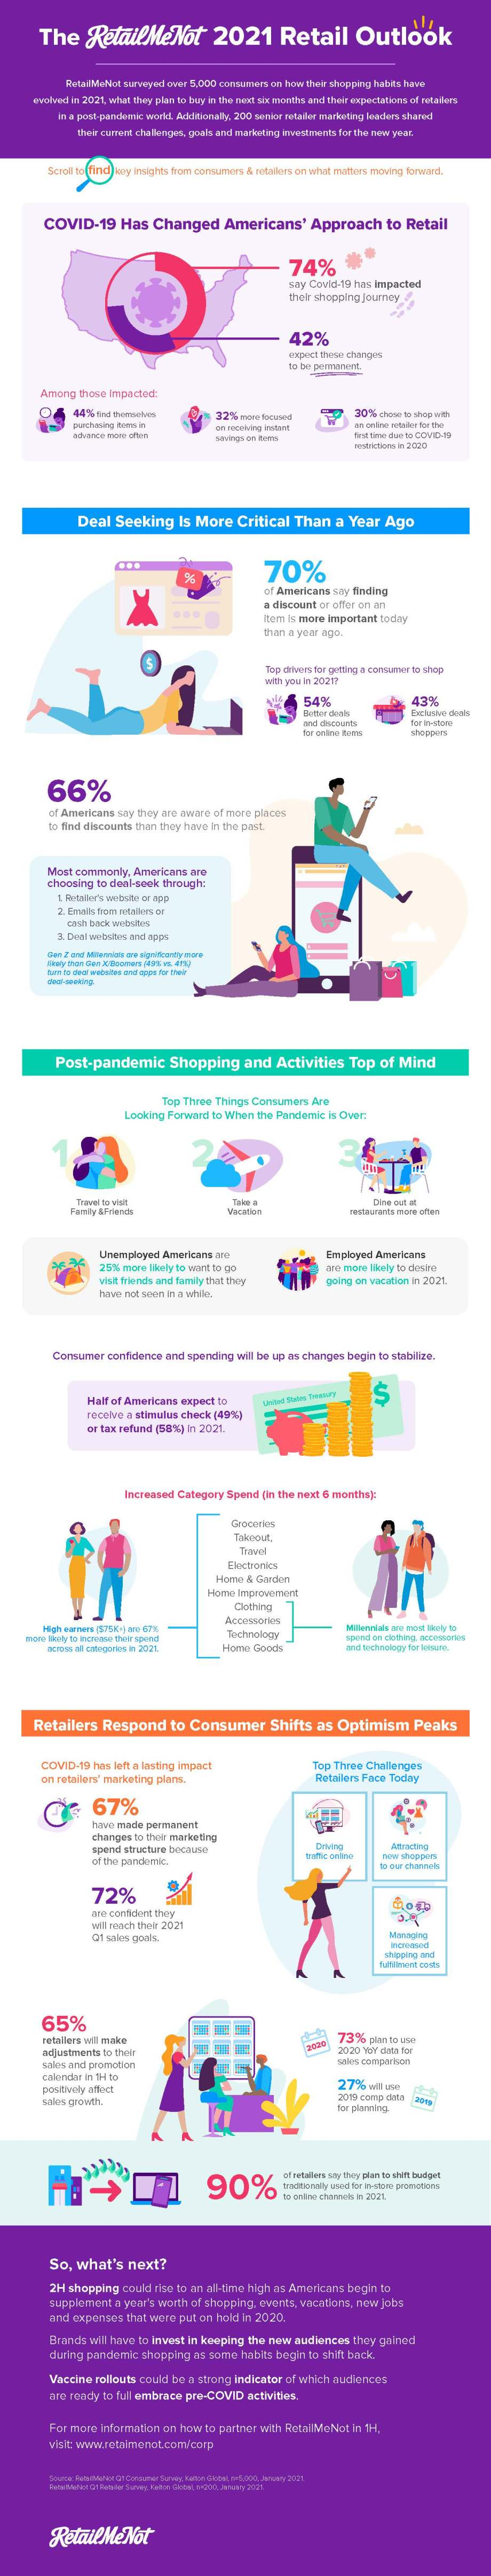 What's Ahead for Retailers in 2021